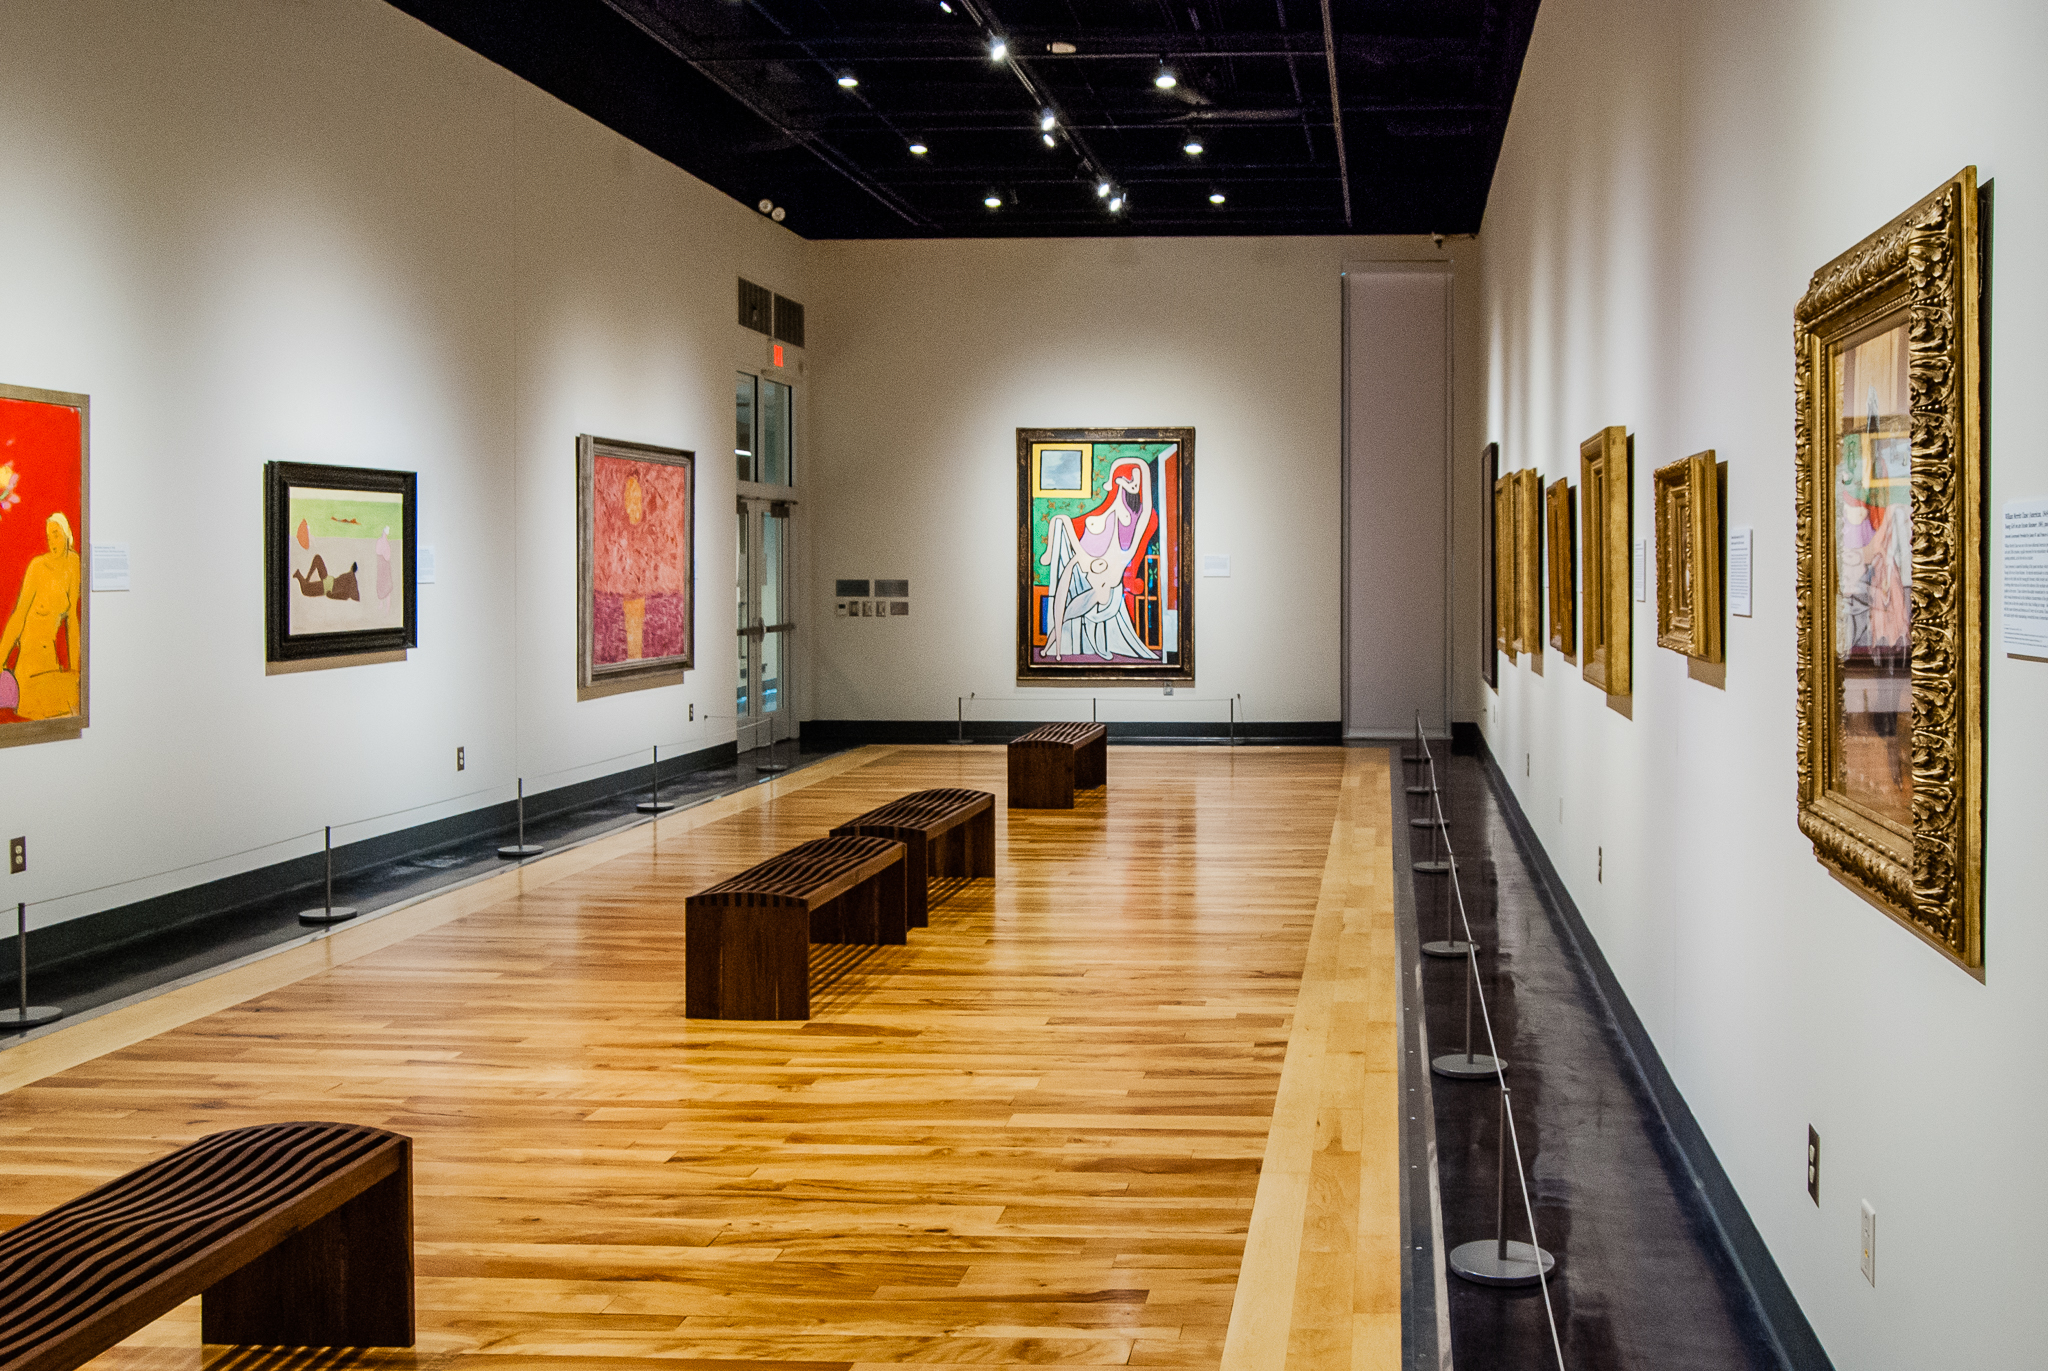 """Gallery installation image from """"Portraits, Landscapes and Still Lifes"""""""